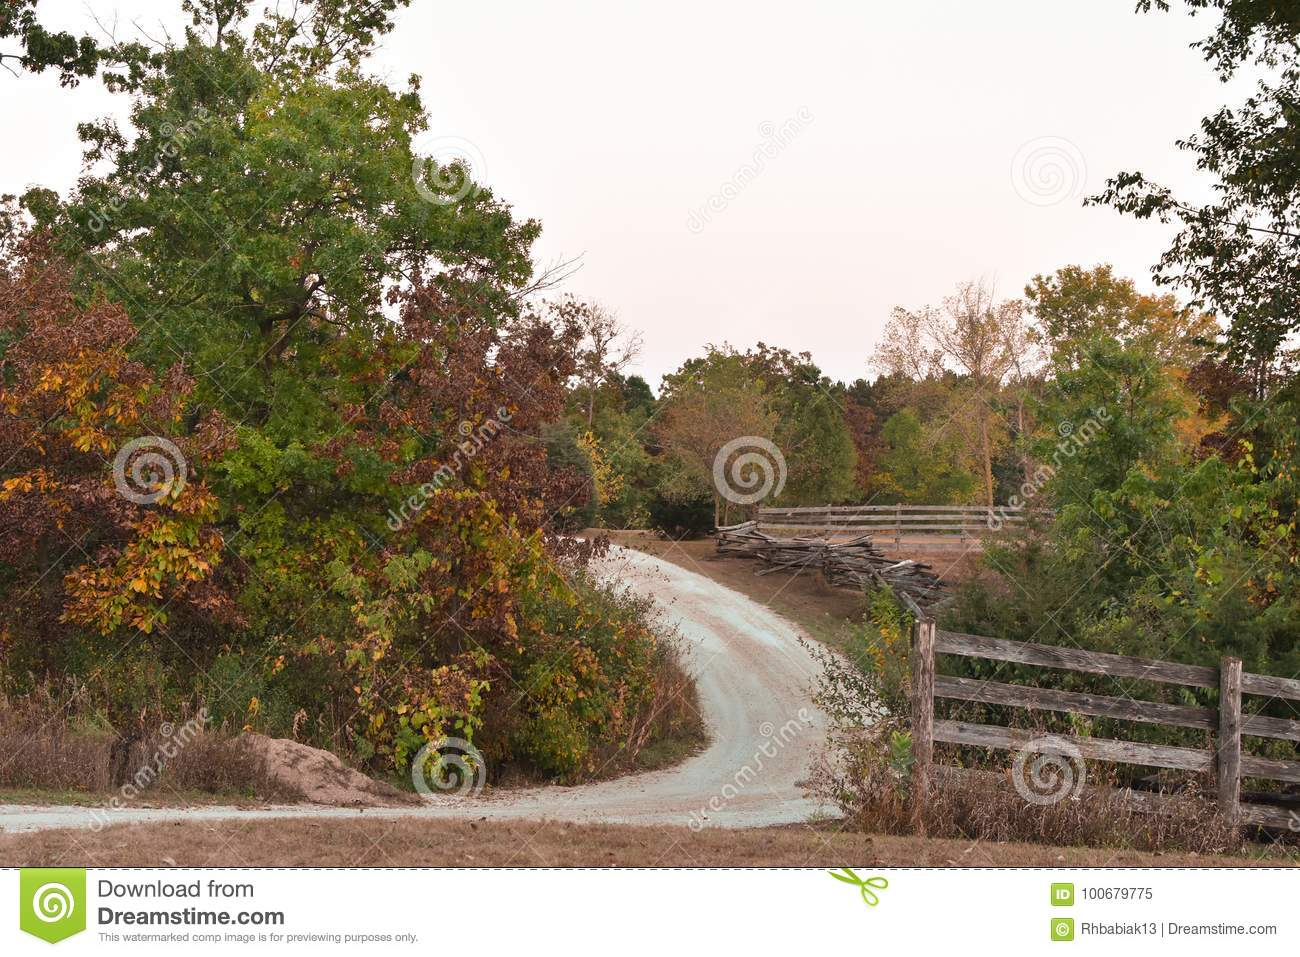 Curved Gravel Road